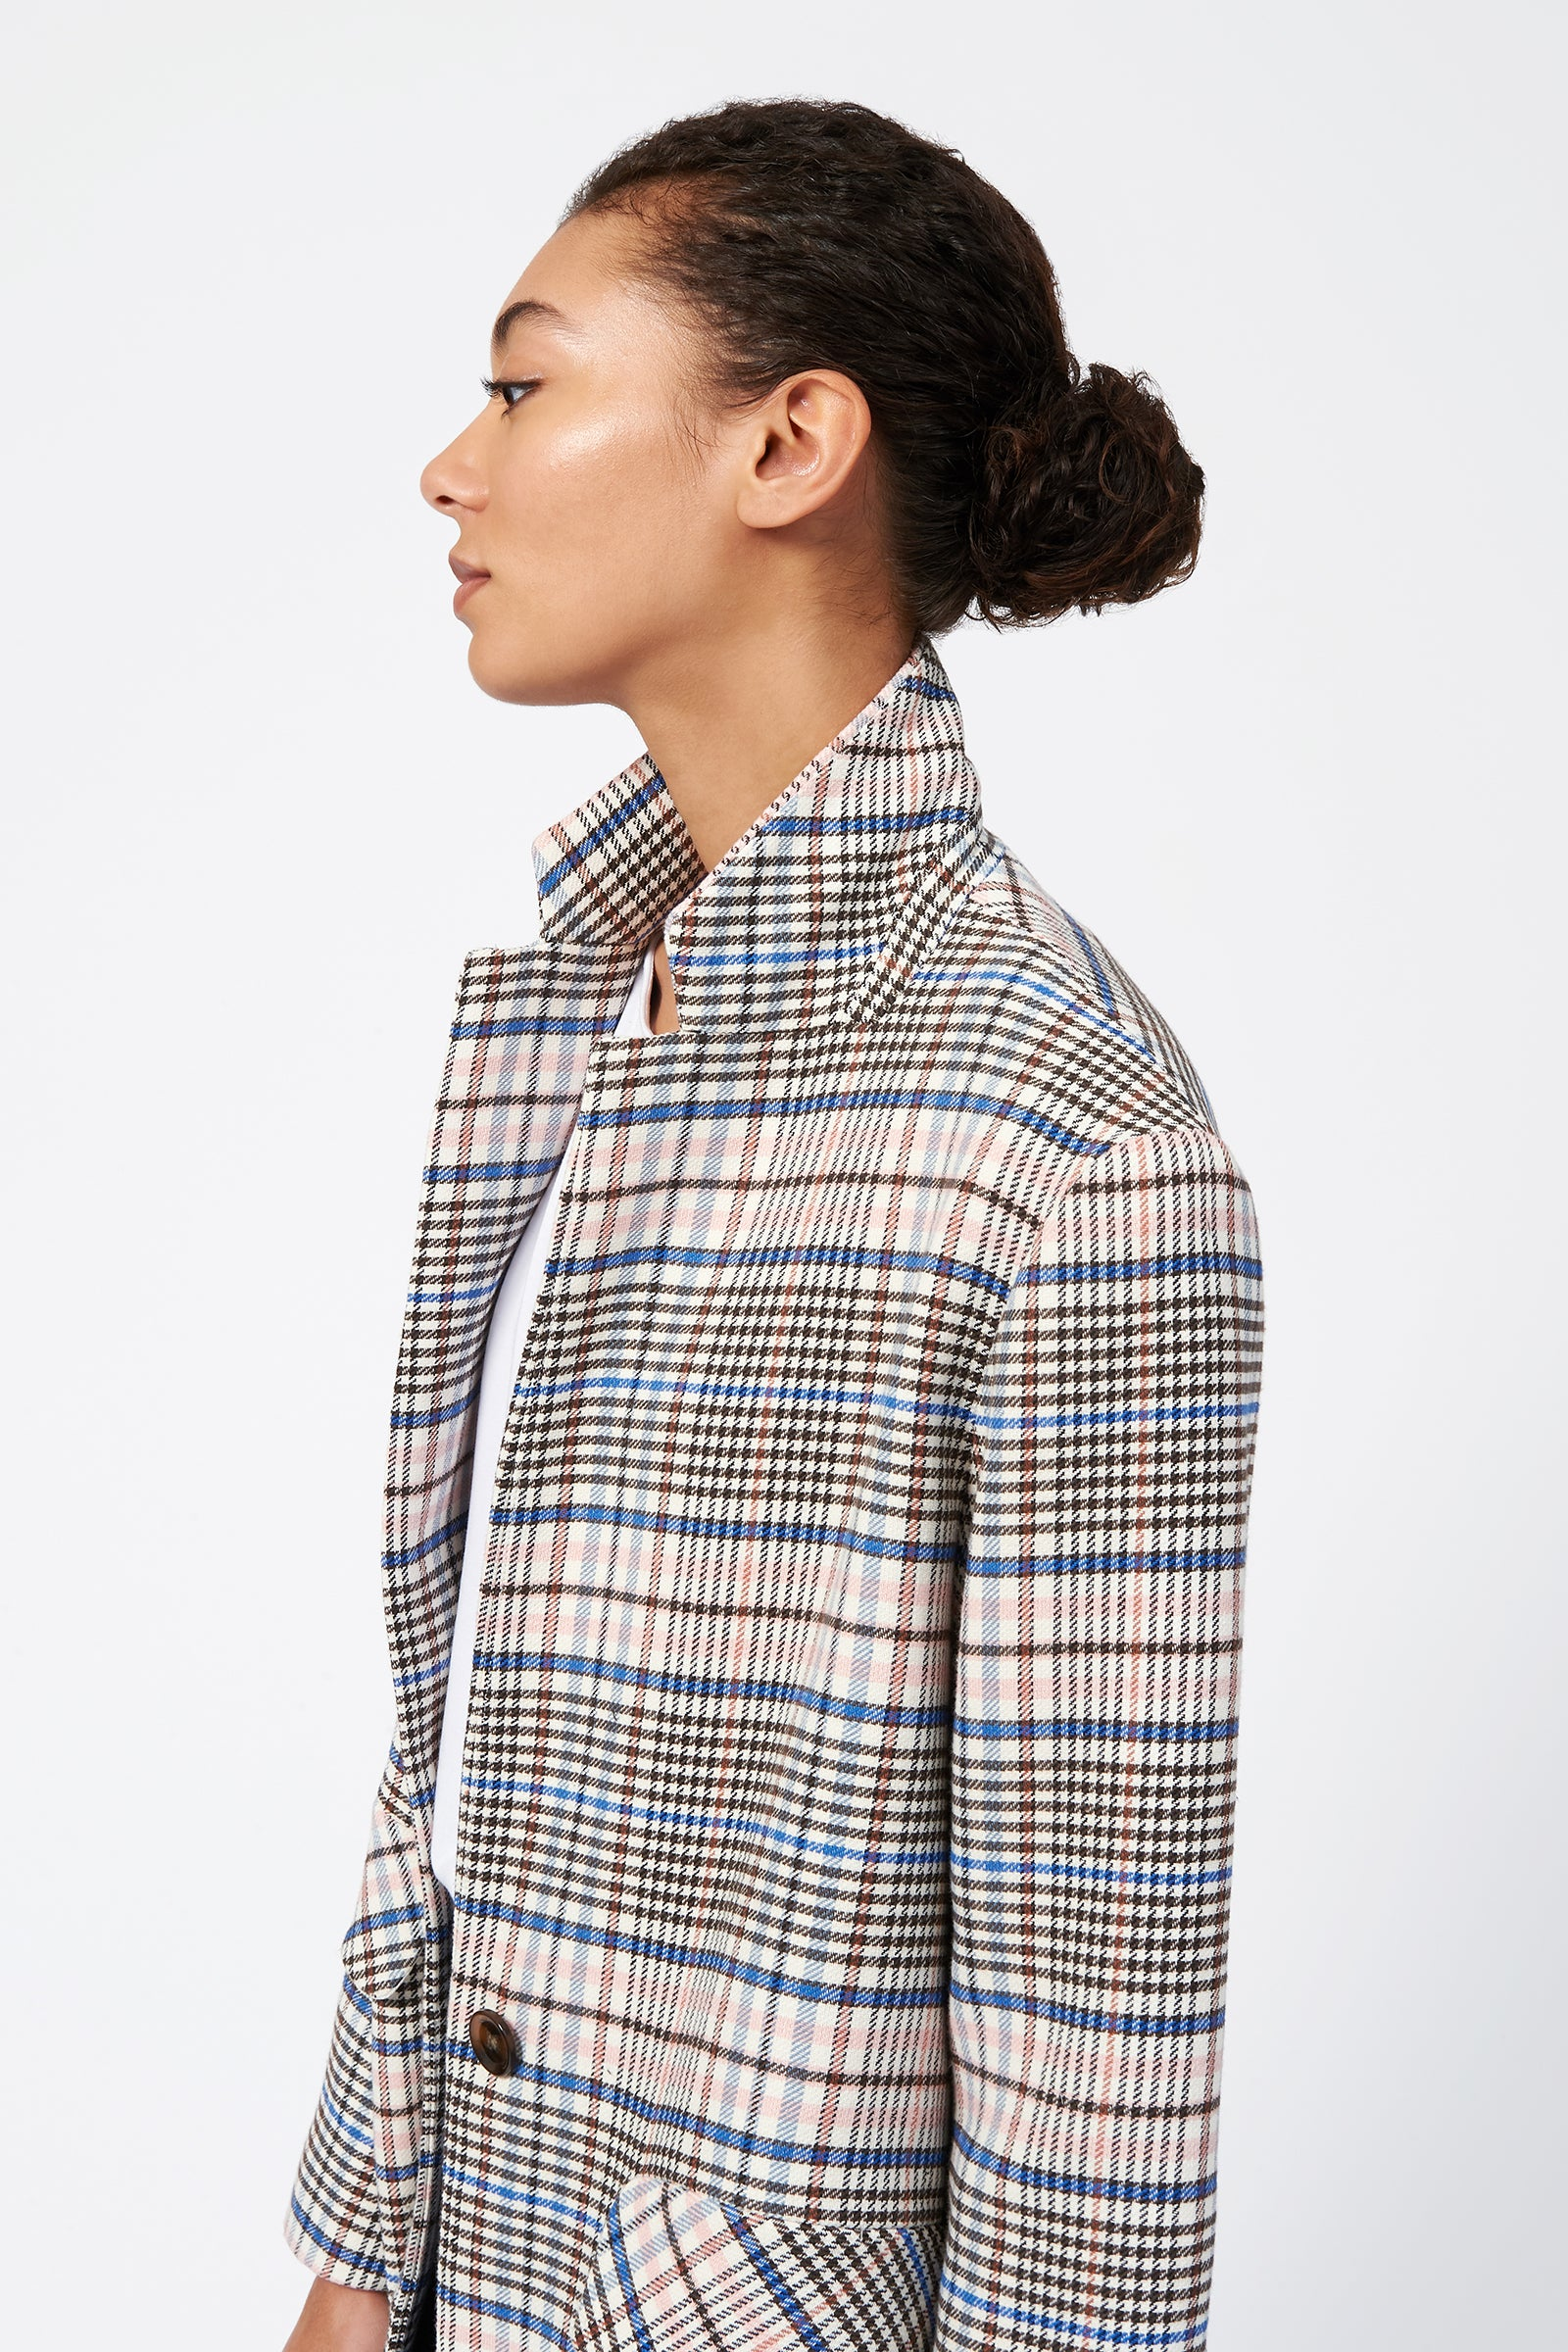 Kal Rieman Plaid Car Coat on Model Side Detail View